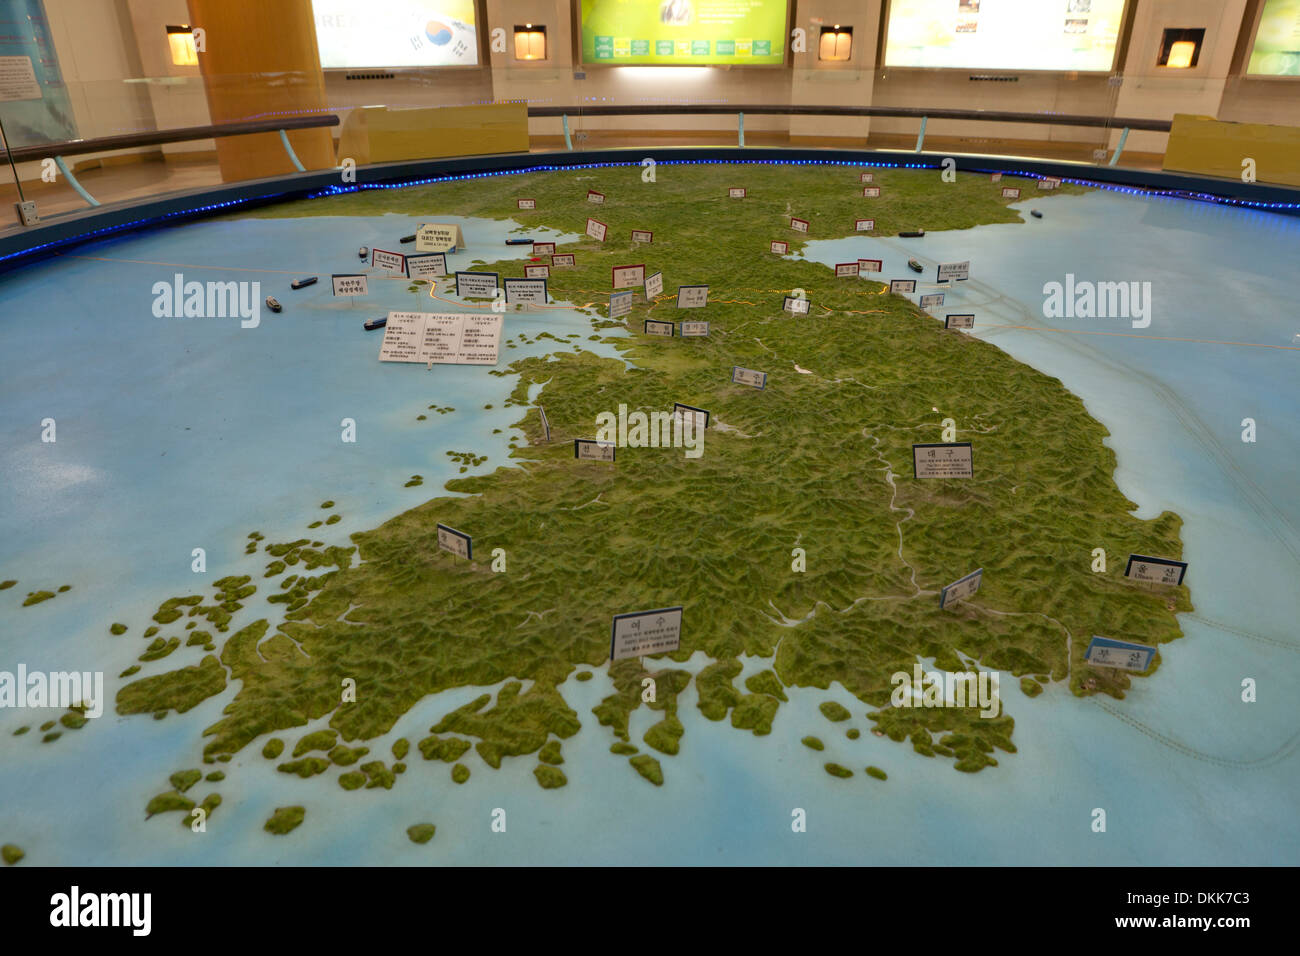 Topographic Map Games.Topographic Map Of The Korean Peninsula Showing Dmz At Unification